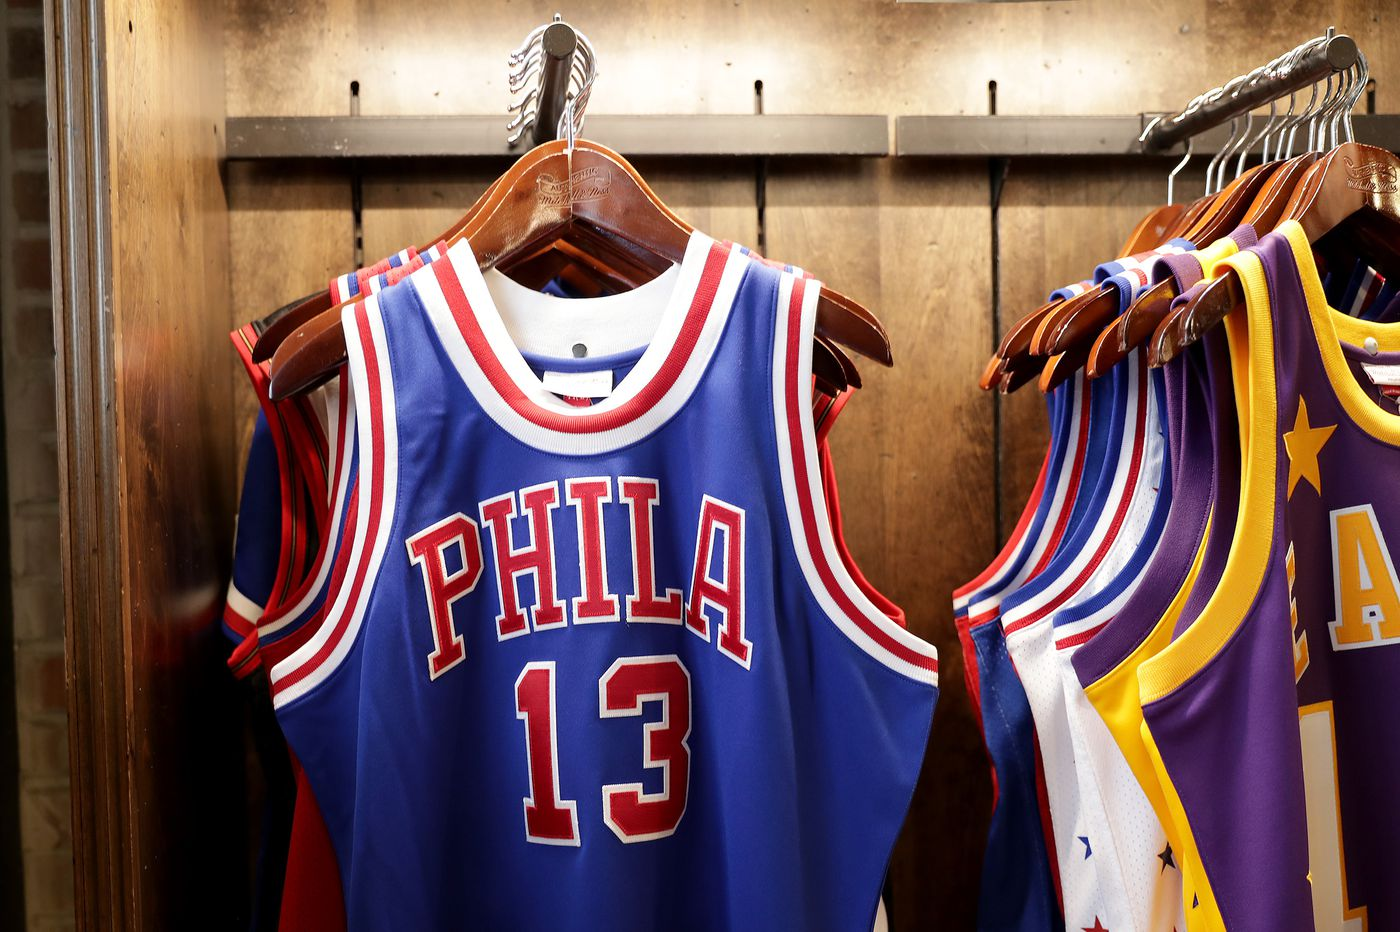 competitive price 82d2b 55a9f The best jersey ever worn by a Philly team? You tell us.